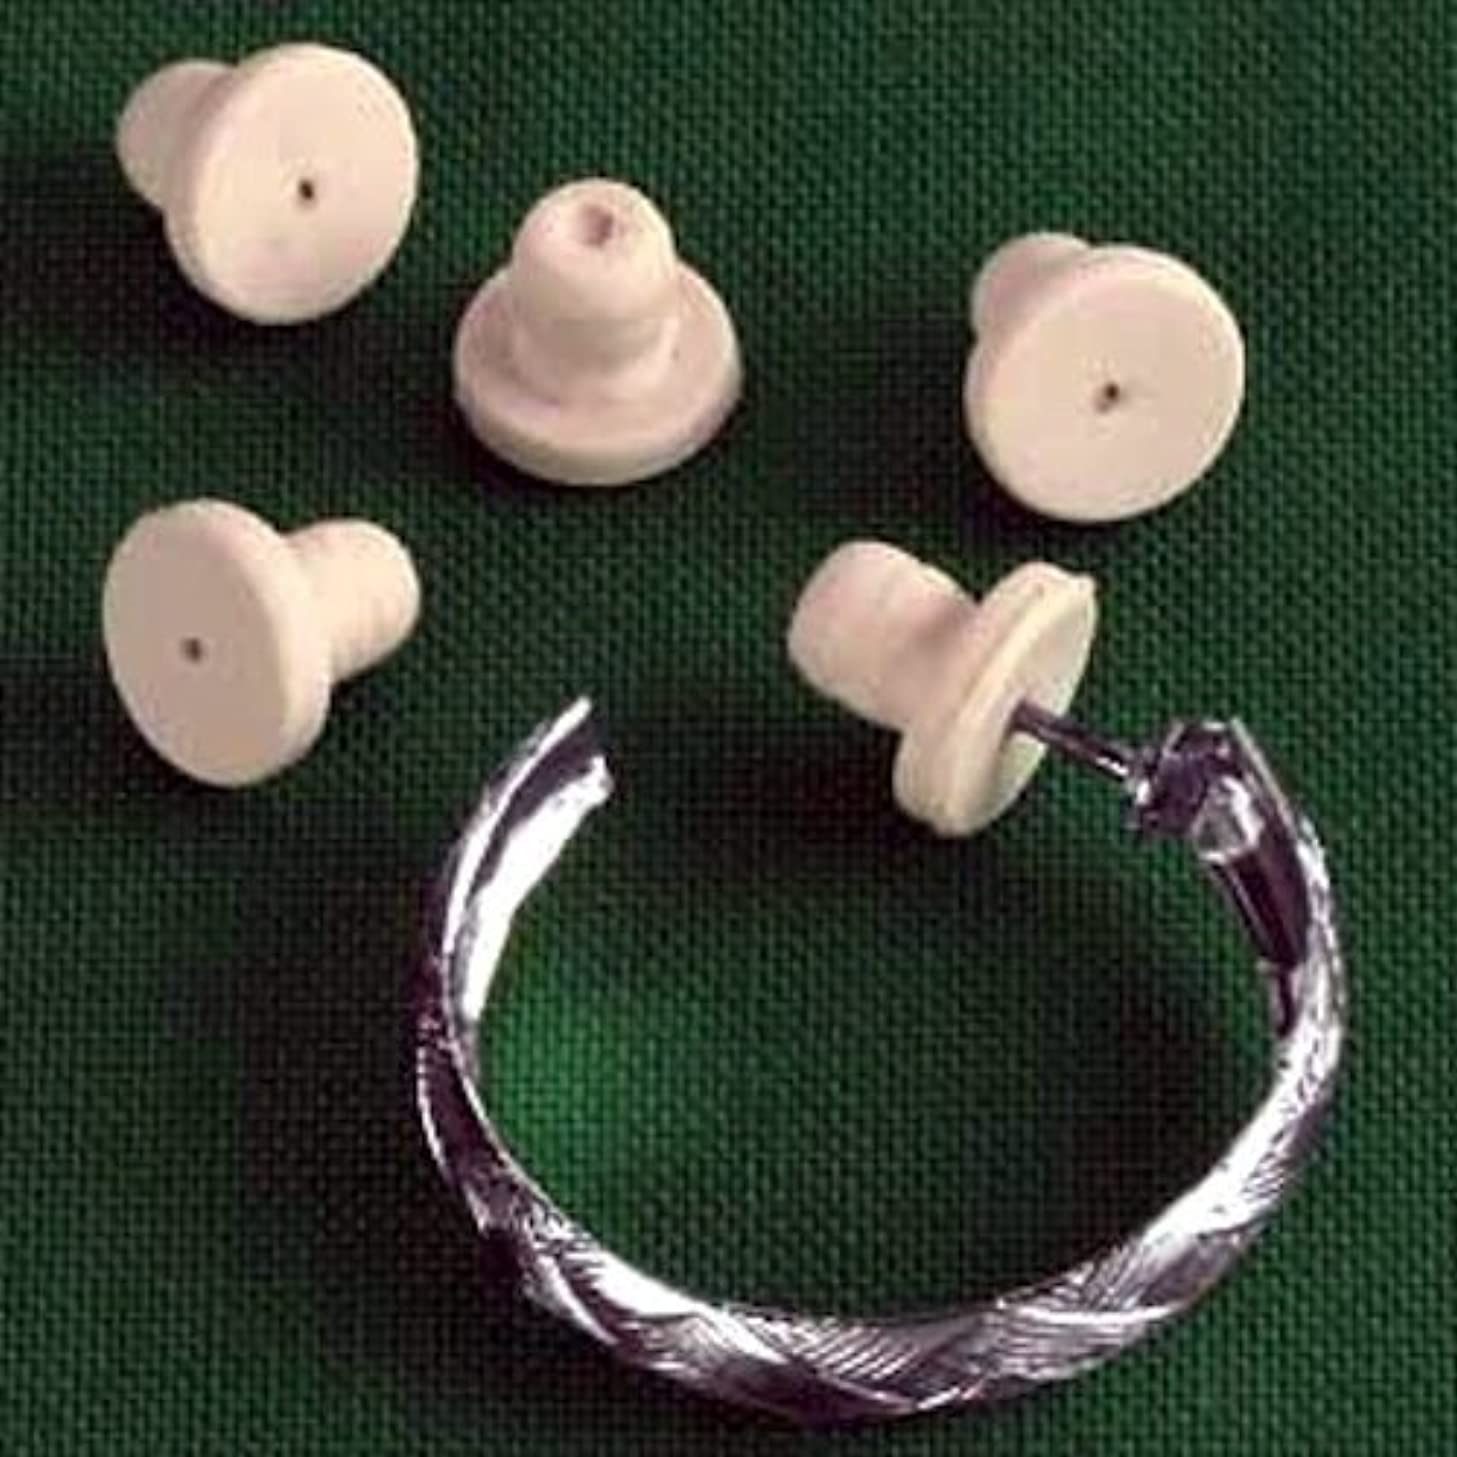 Cushioned Silicone Earring Backs - Set of 6